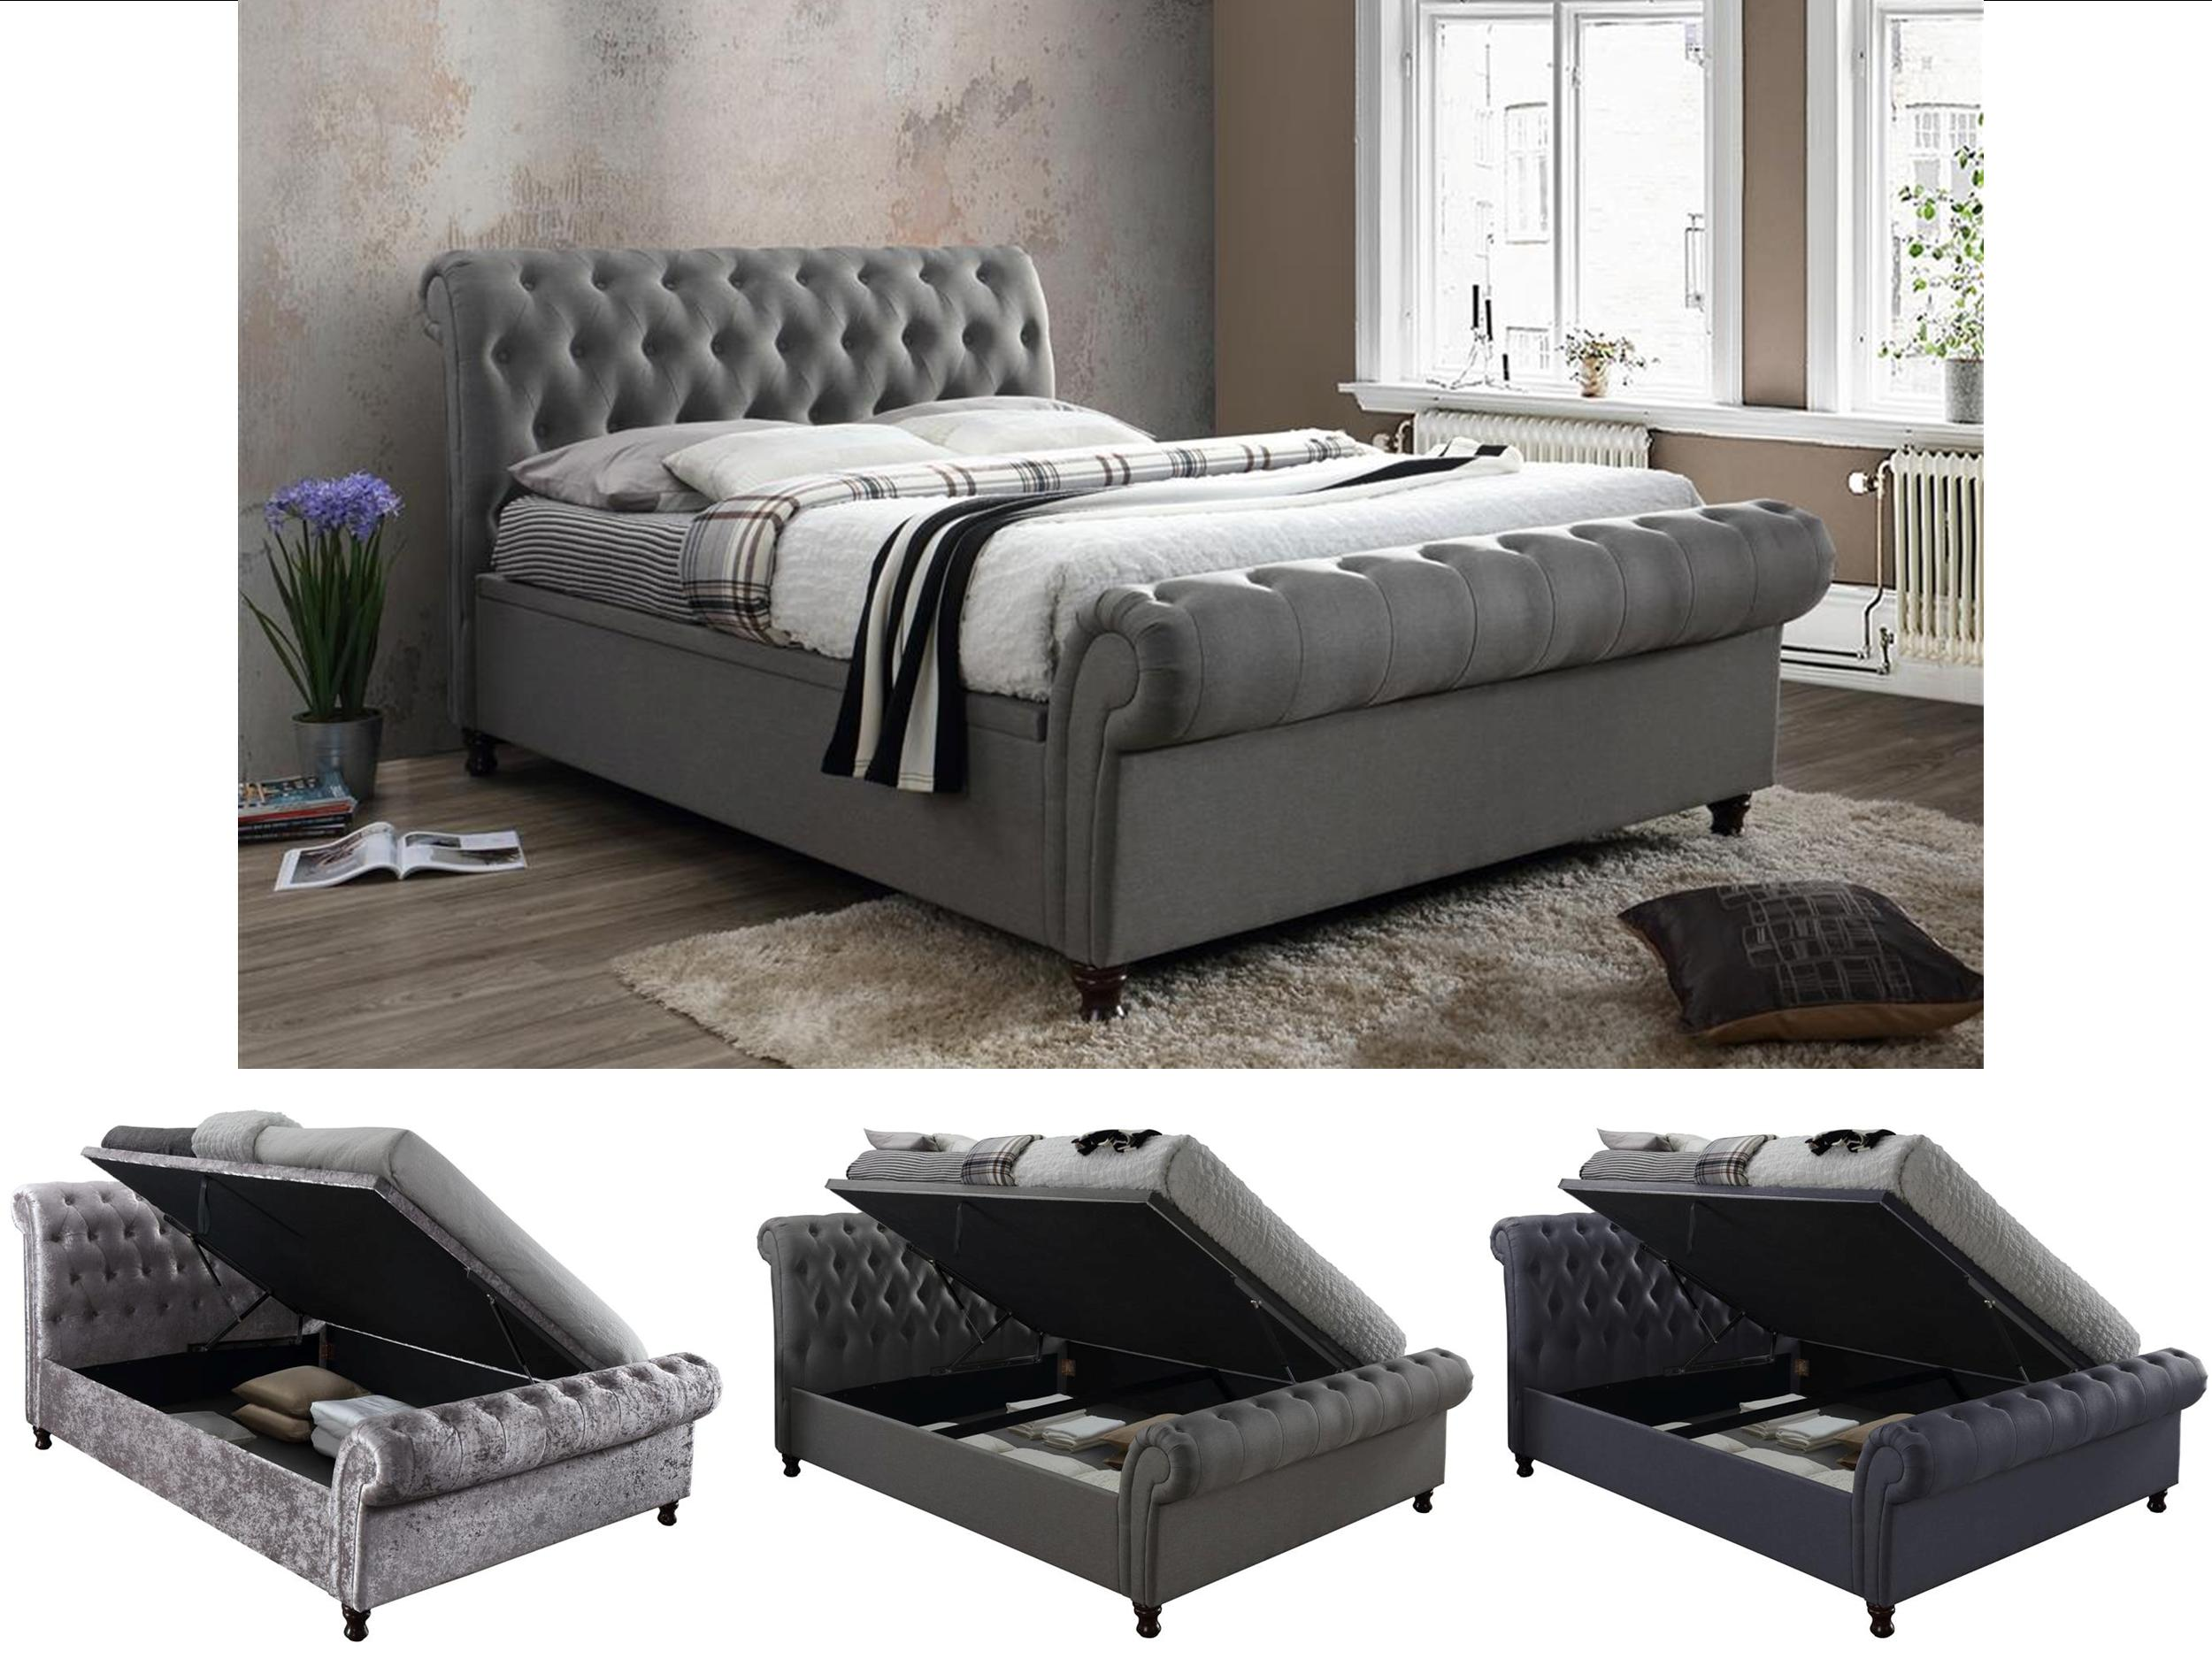 Fine Details About Birlea Castello Luxury Chesterfield Side Lift Ottoman Bed Charcoal Grey Steel Forskolin Free Trial Chair Design Images Forskolin Free Trialorg